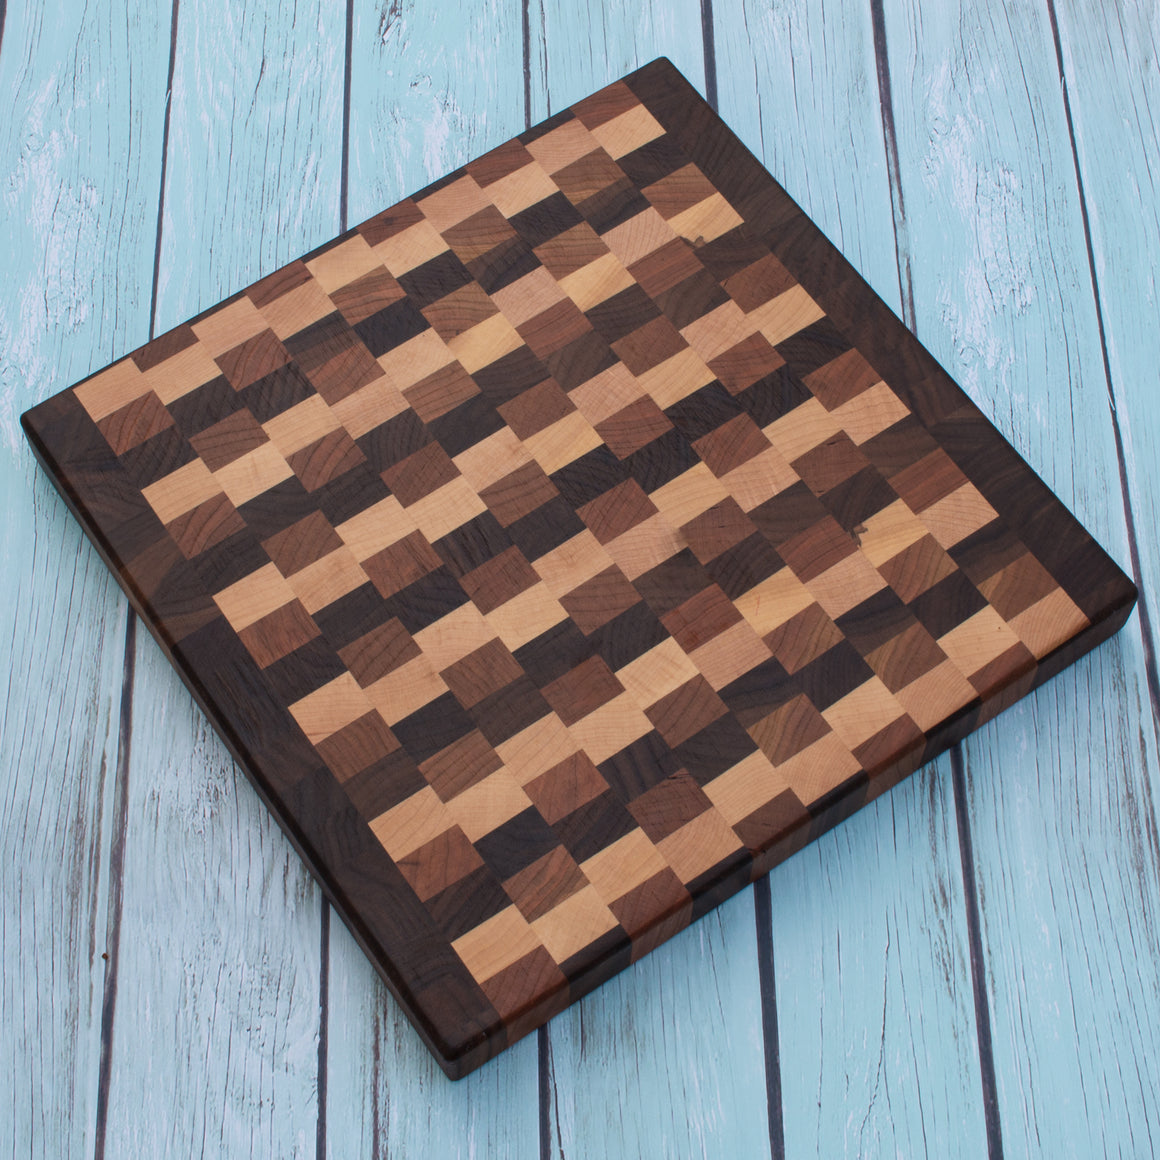 Mixed Hardwood Chopping Block